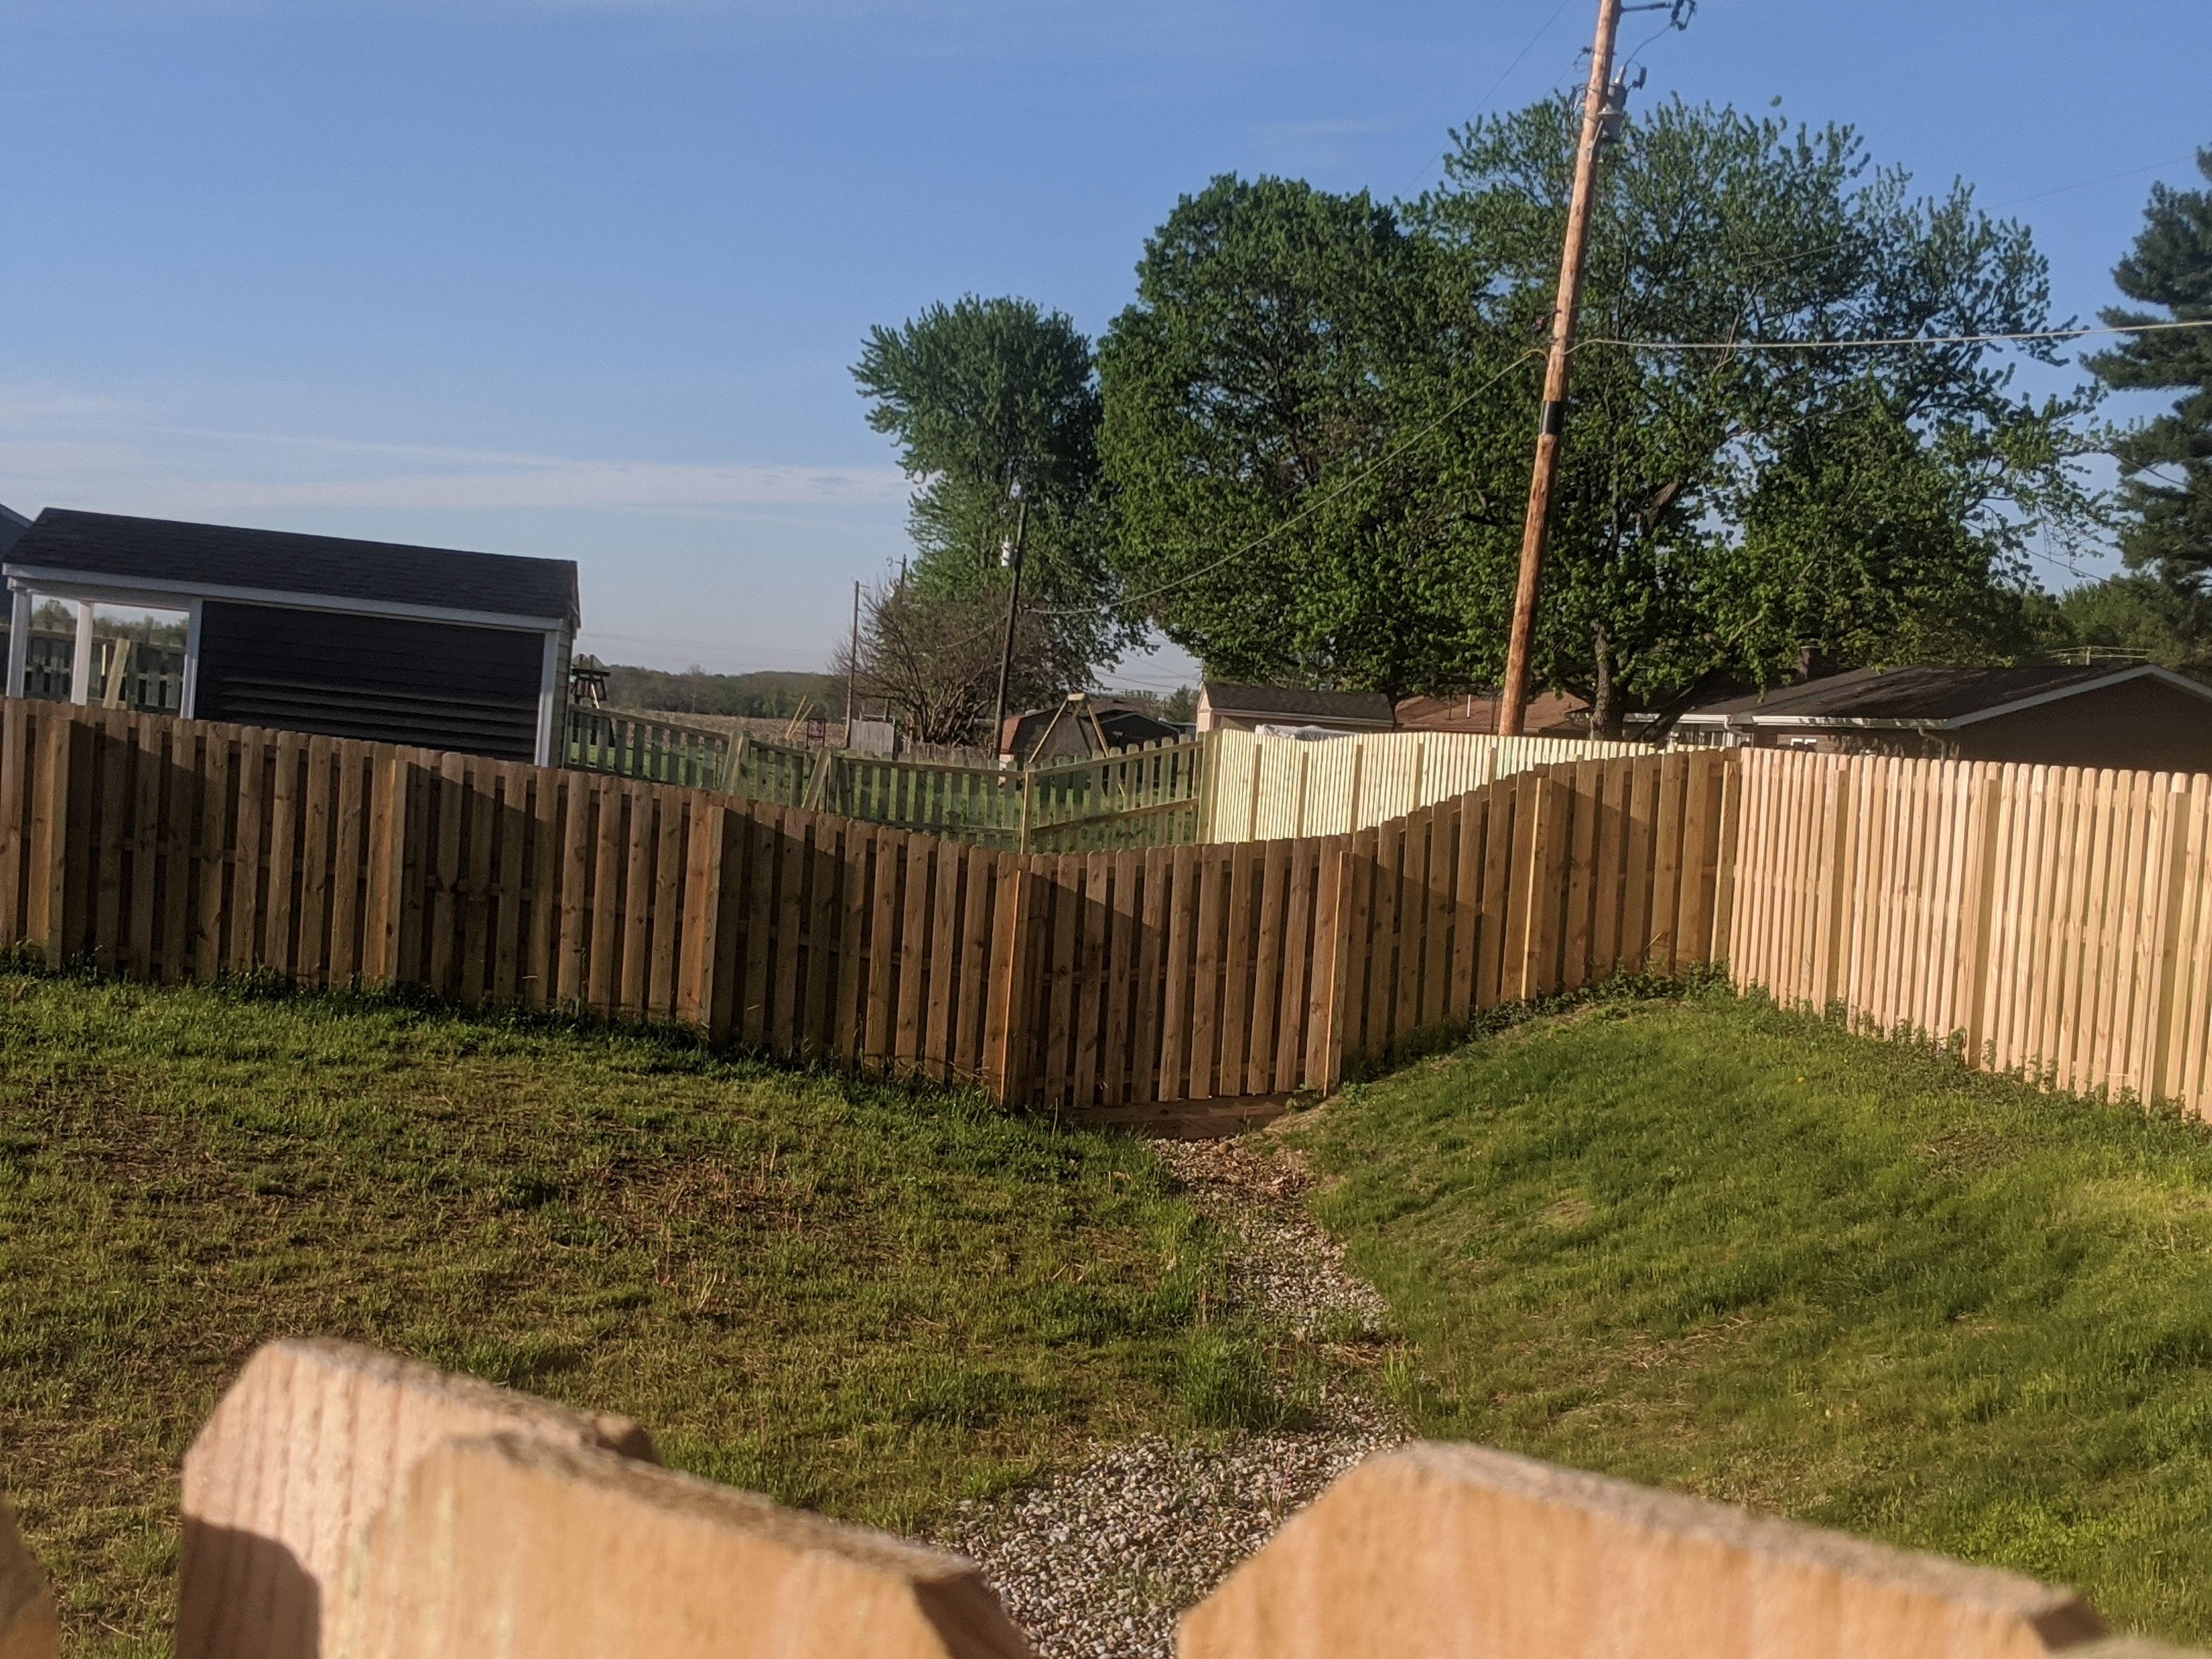 A fence built across a drainage easement blocks the flow and creates flooding